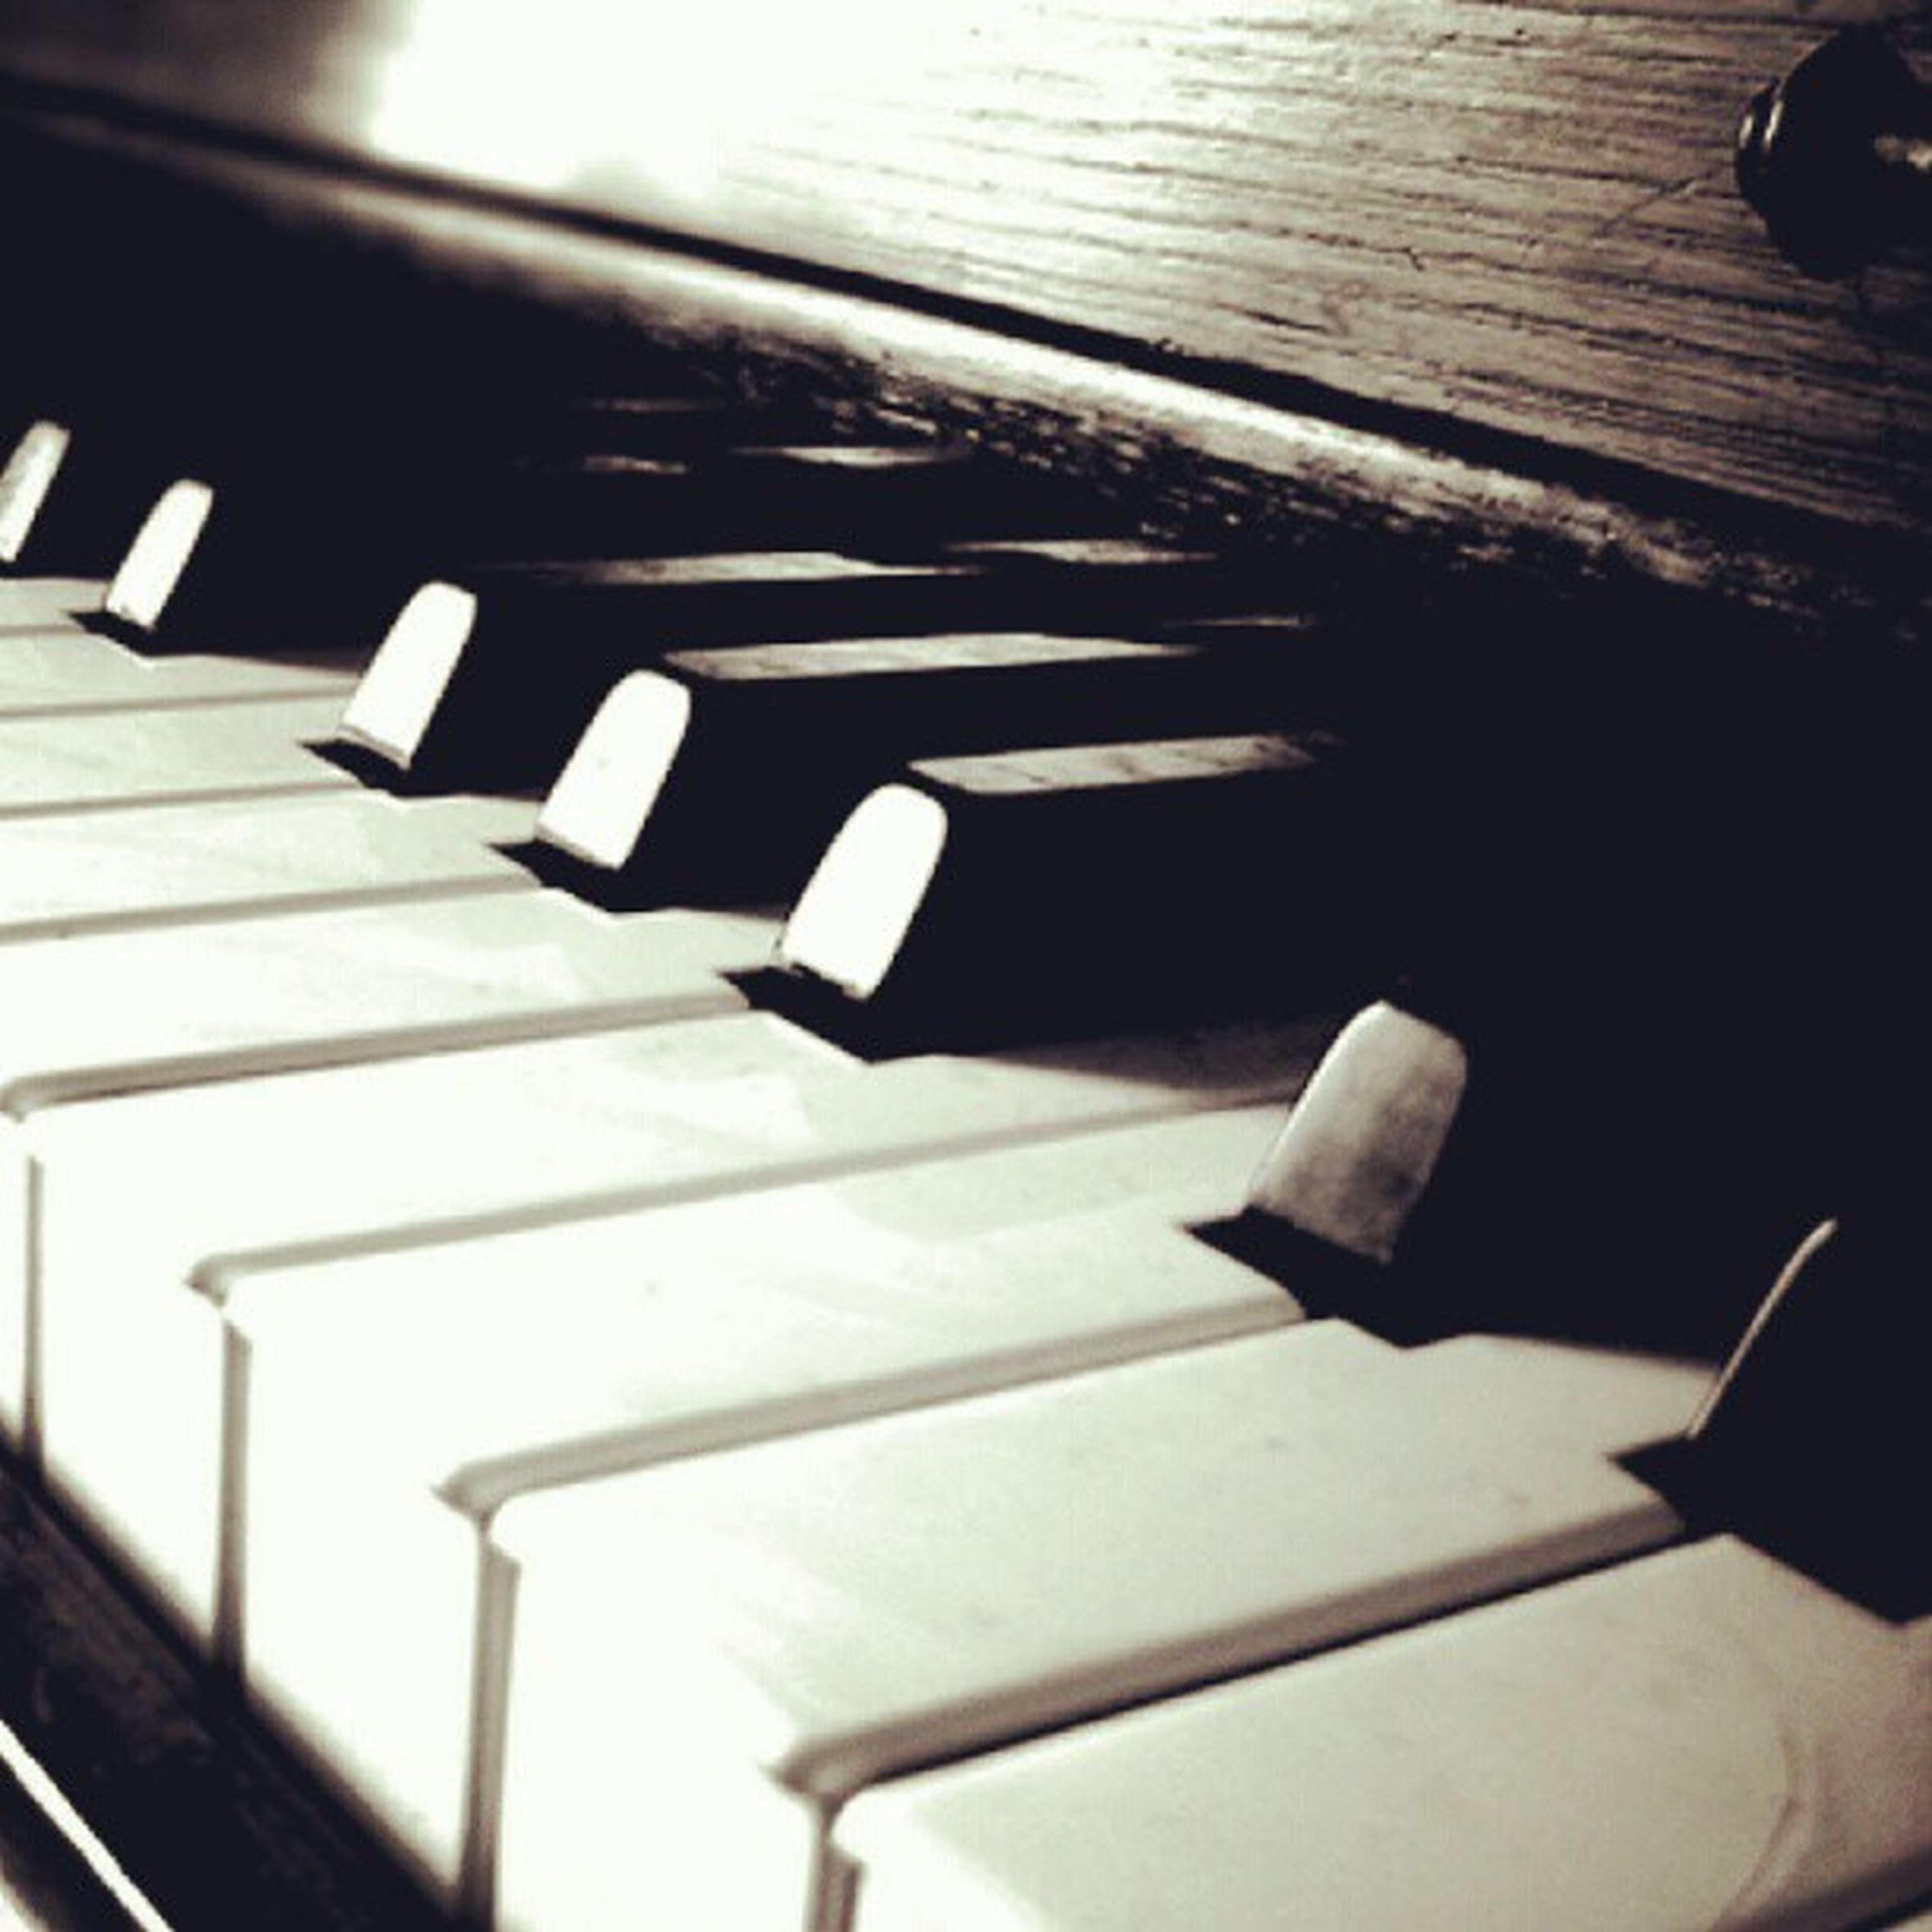 indoors, in a row, high angle view, close-up, musical instrument, still life, table, music, piano key, wood - material, piano, arts culture and entertainment, repetition, pattern, shadow, selective focus, metal, empty, musical equipment, no people